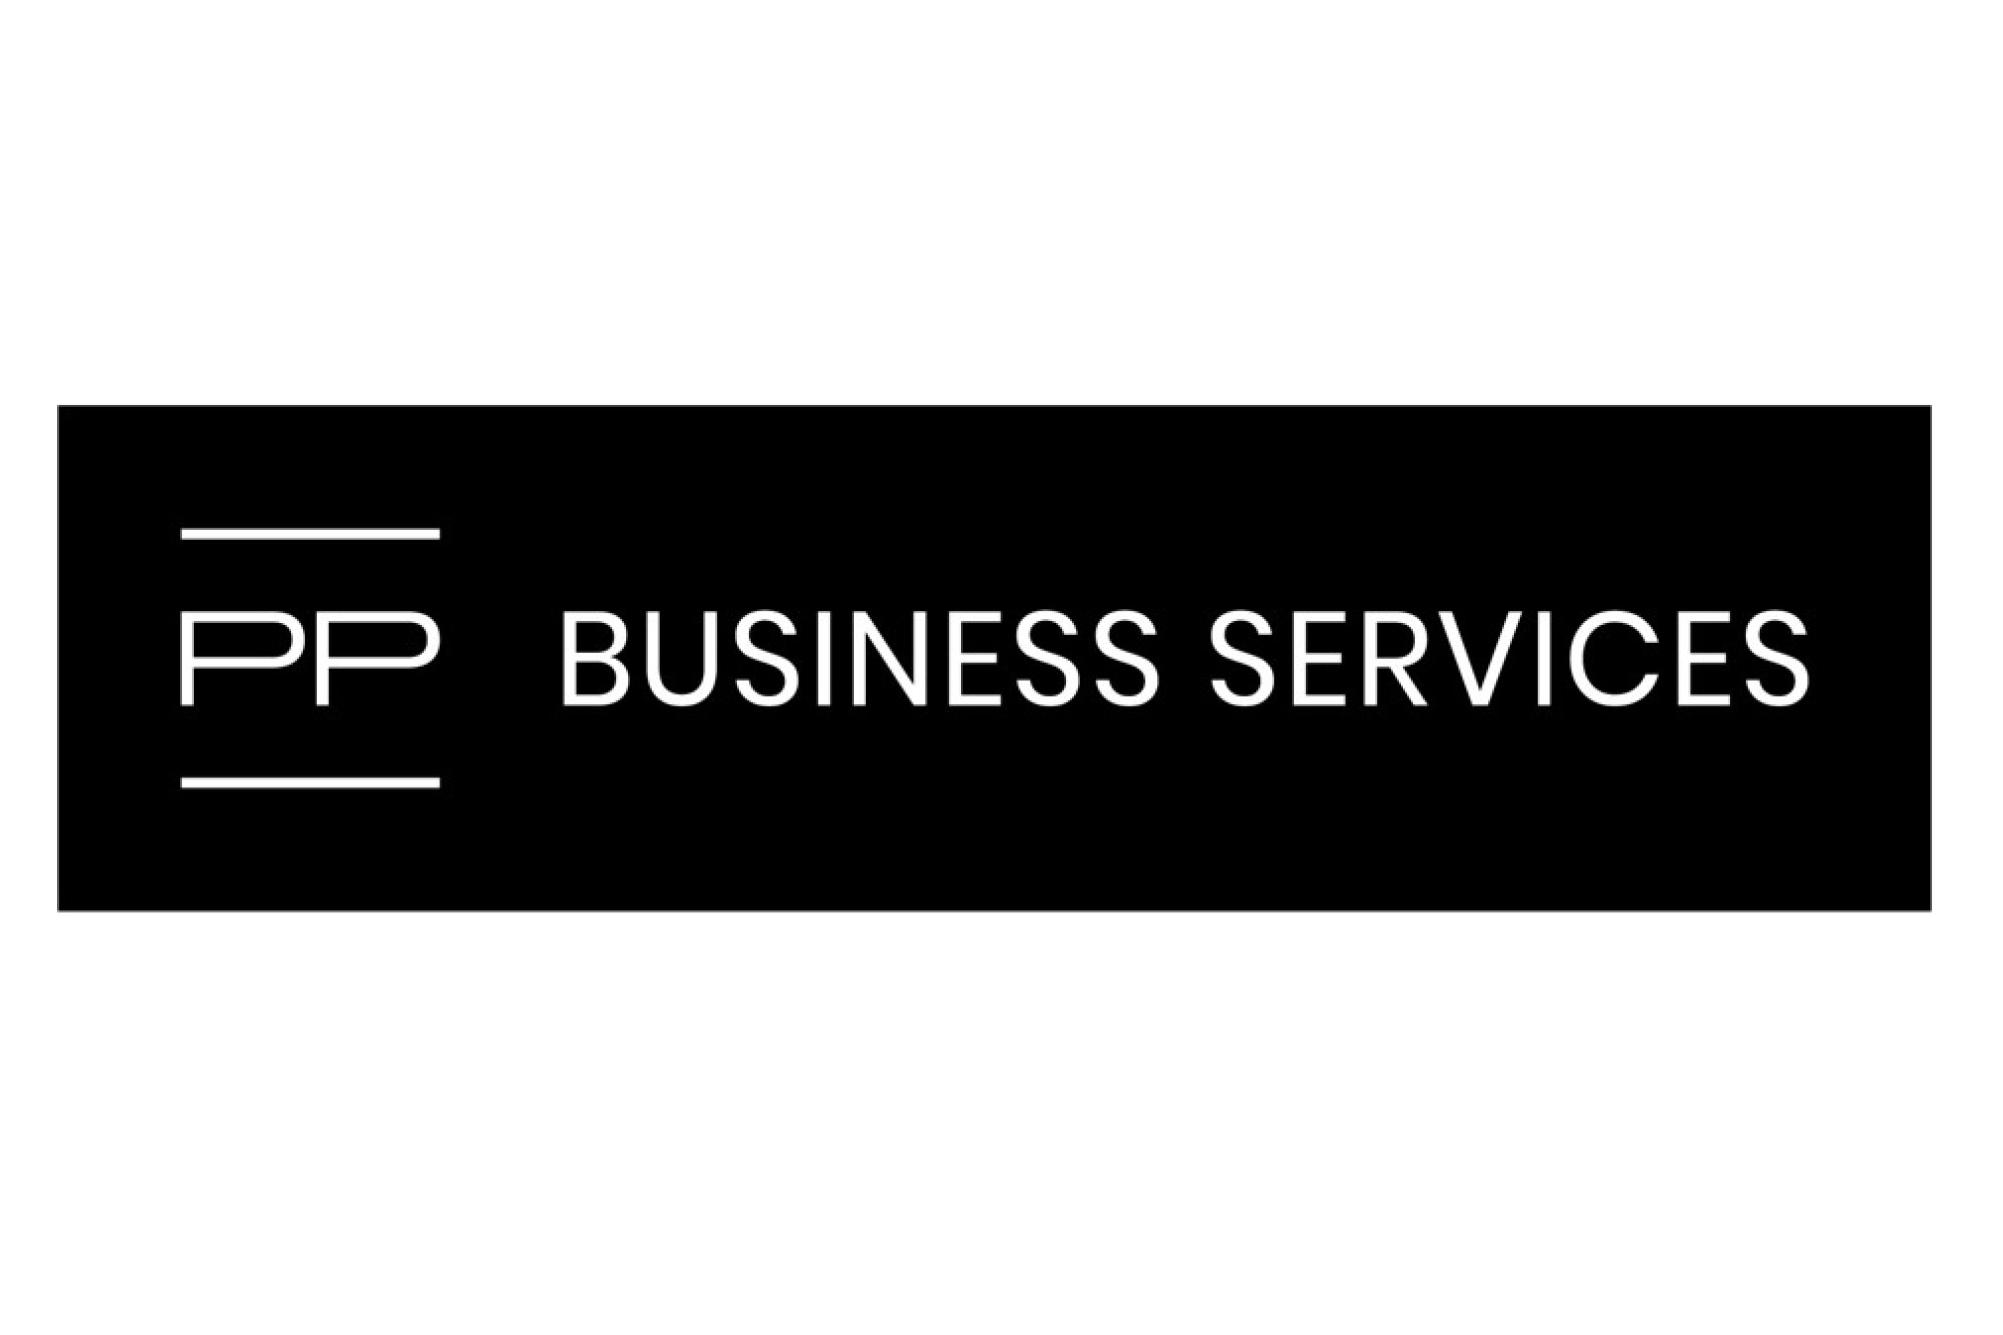 PP Business Services